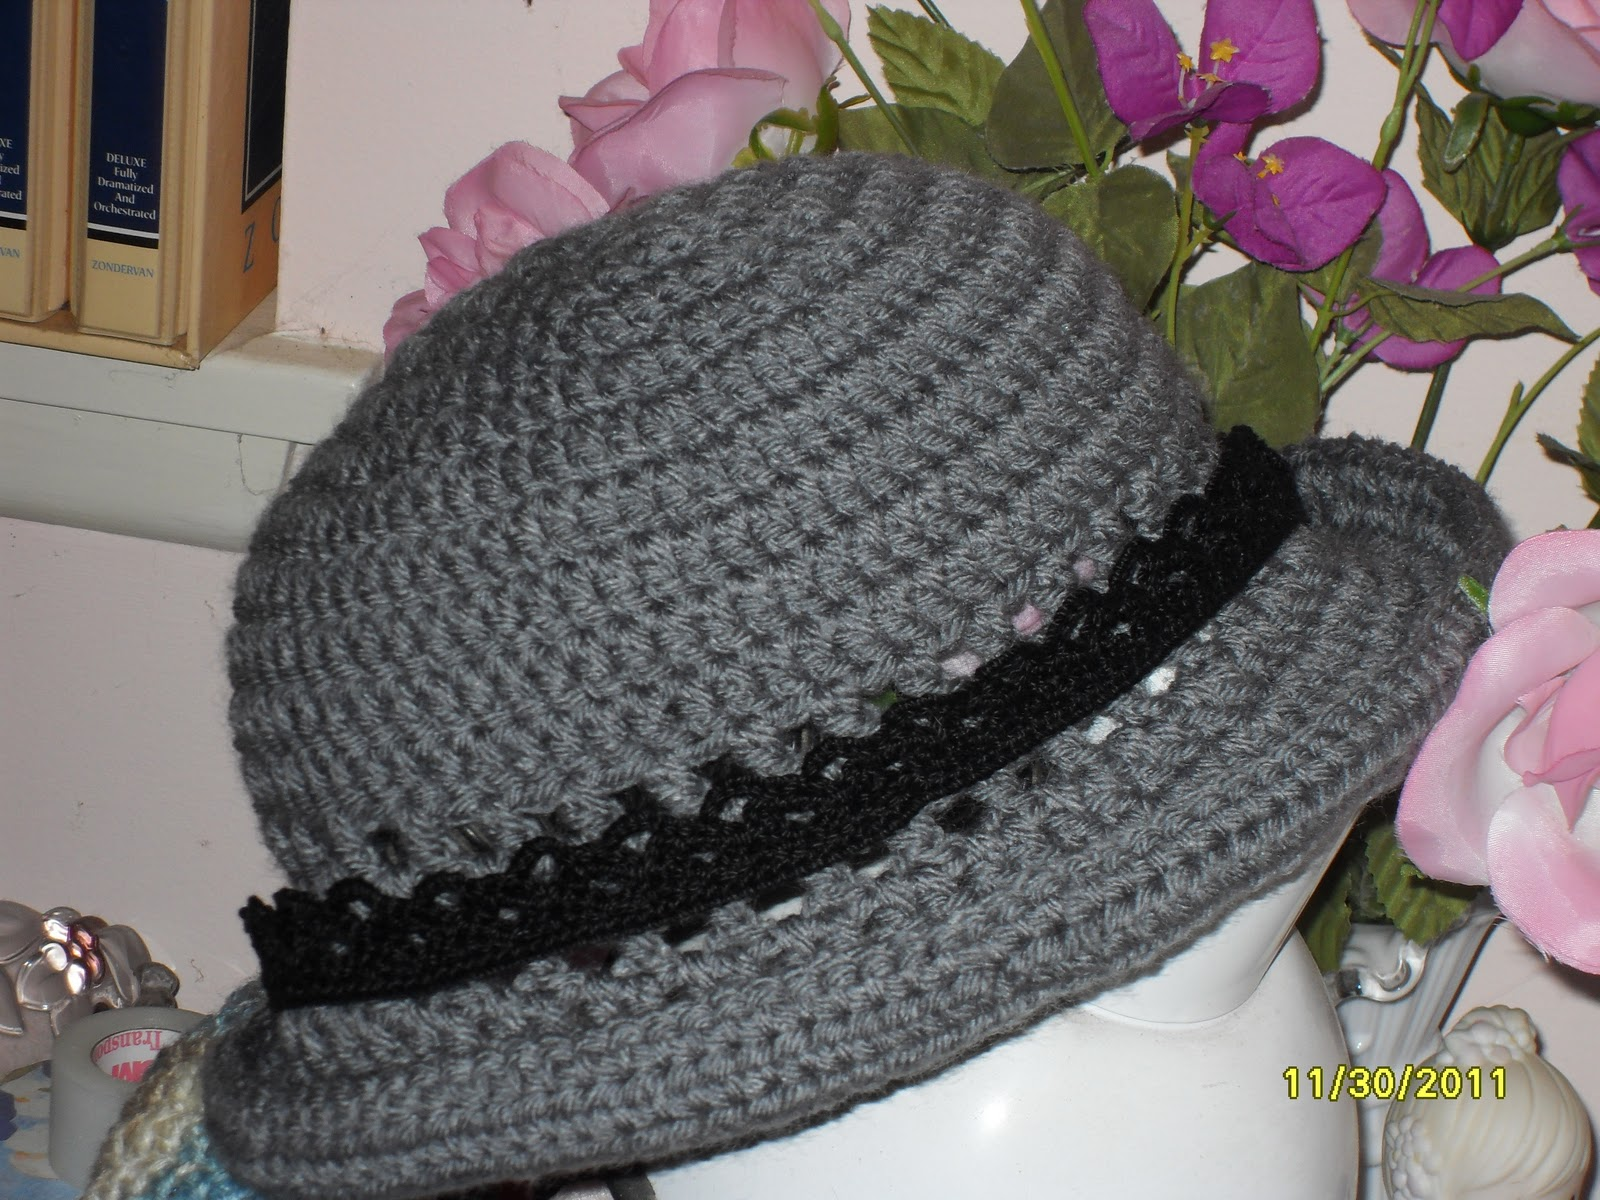 Simple Crochet Patterns : Easy Hats to Crochet is my first eBook with 10 crochet hat patterns ...